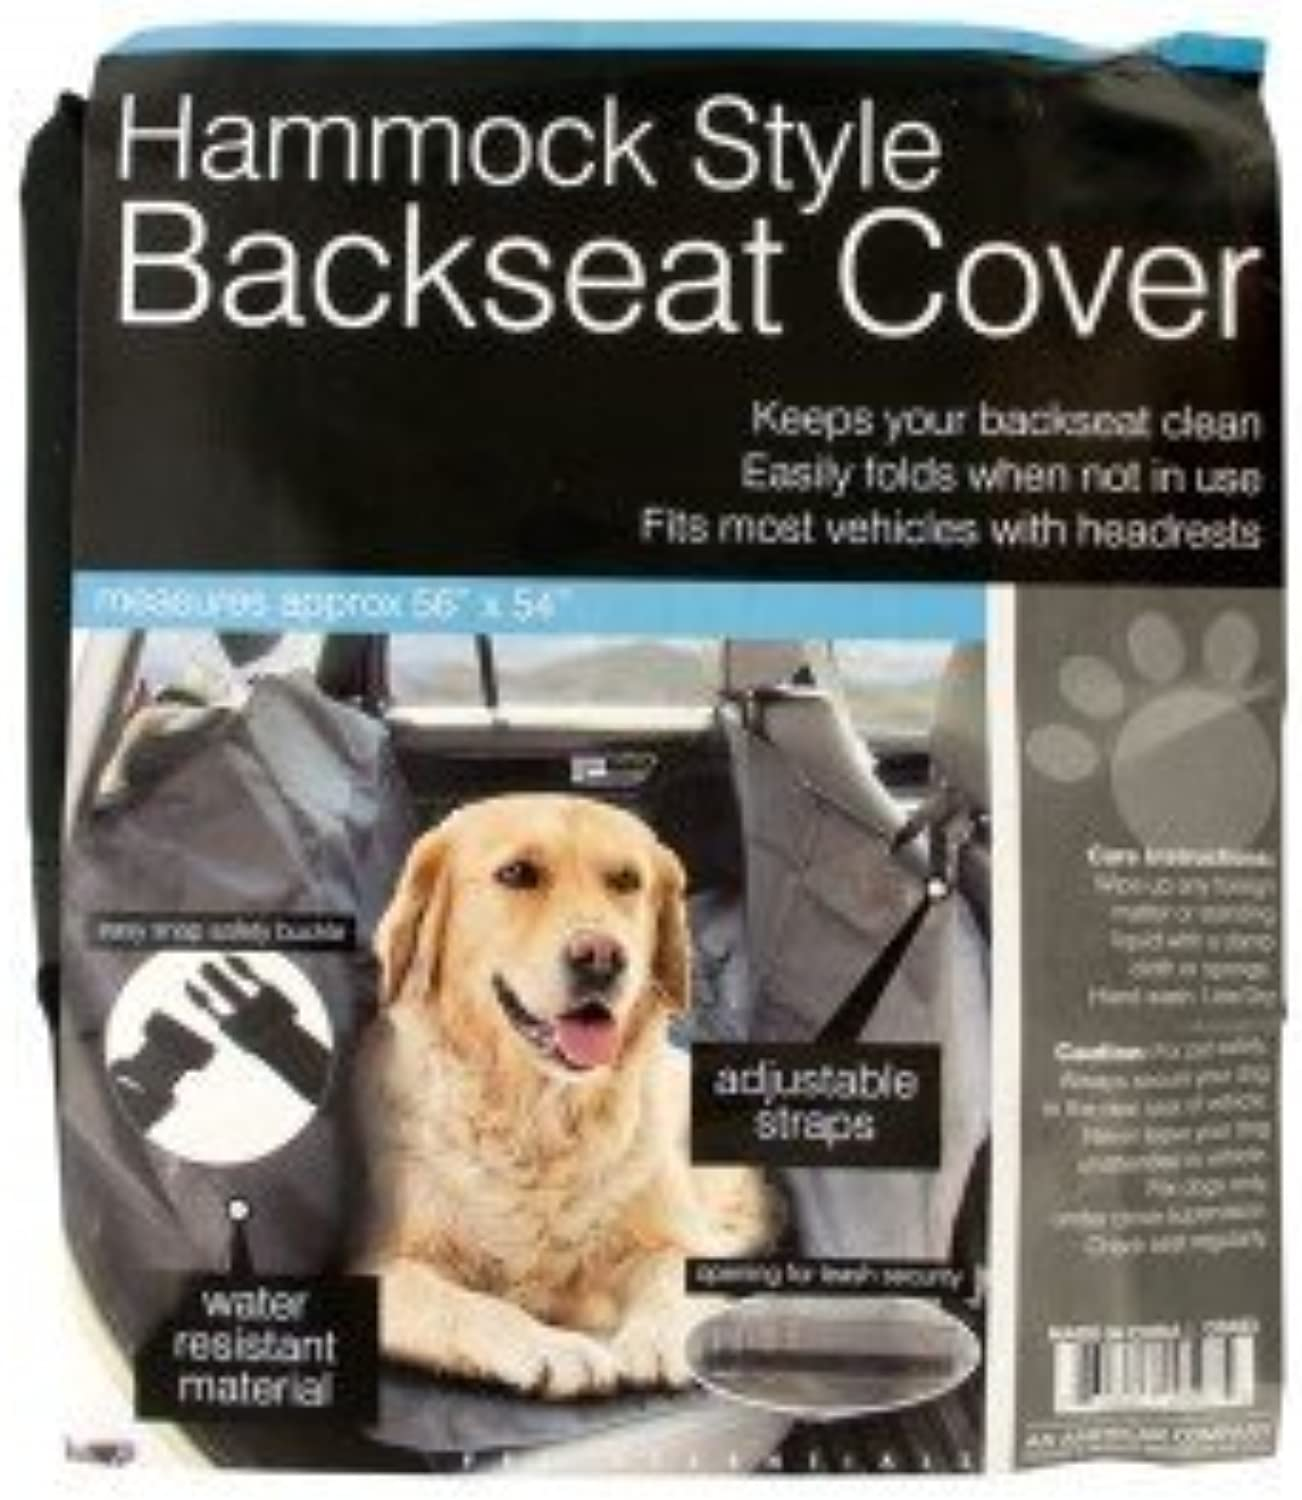 Hammock Style Backseat Cover for Dogs